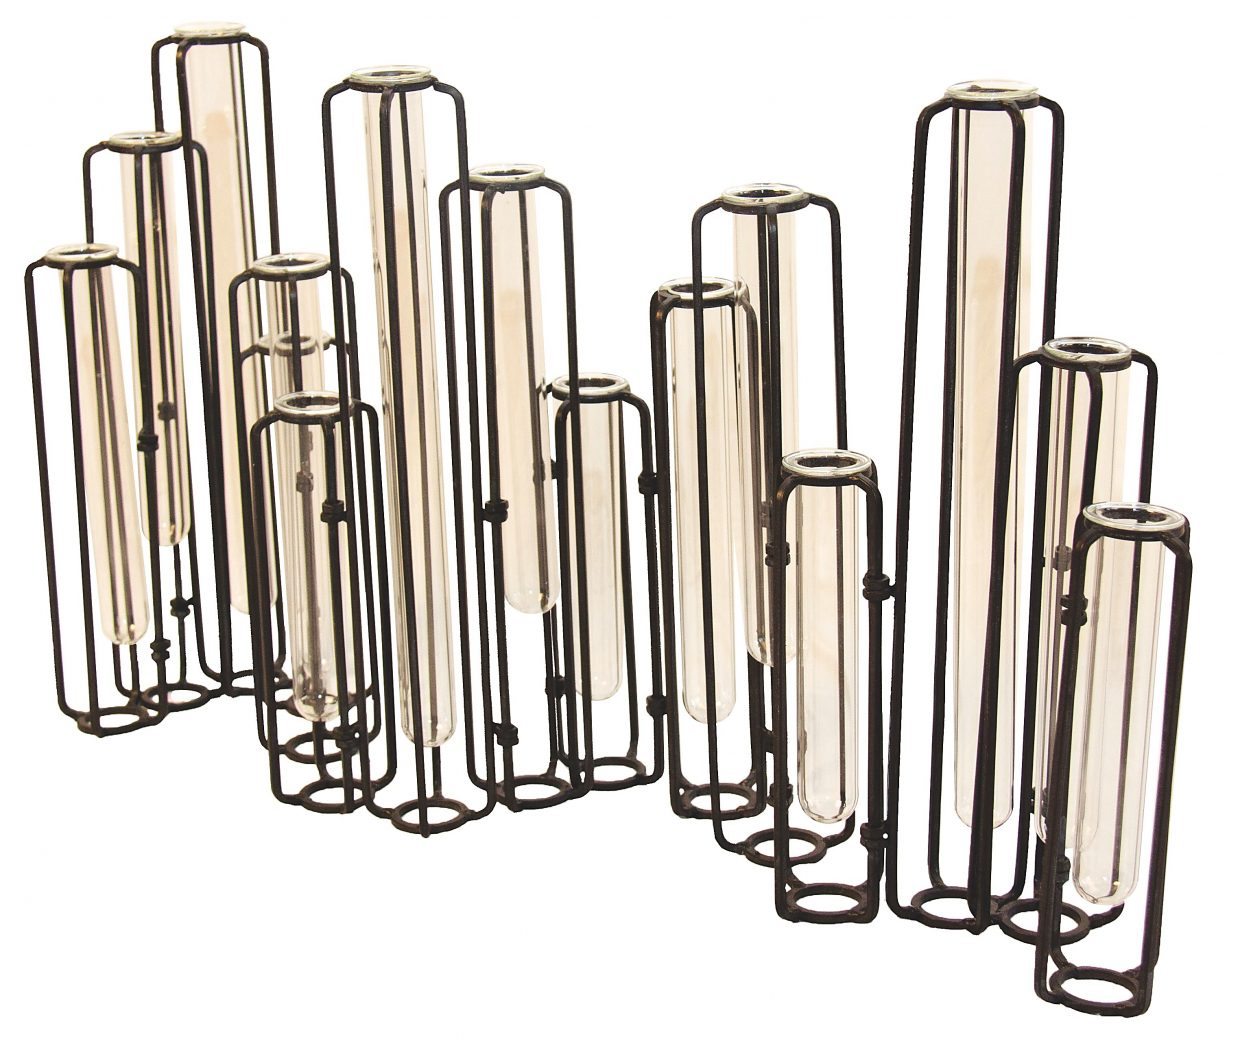 Featured: Test Tube Vase $155